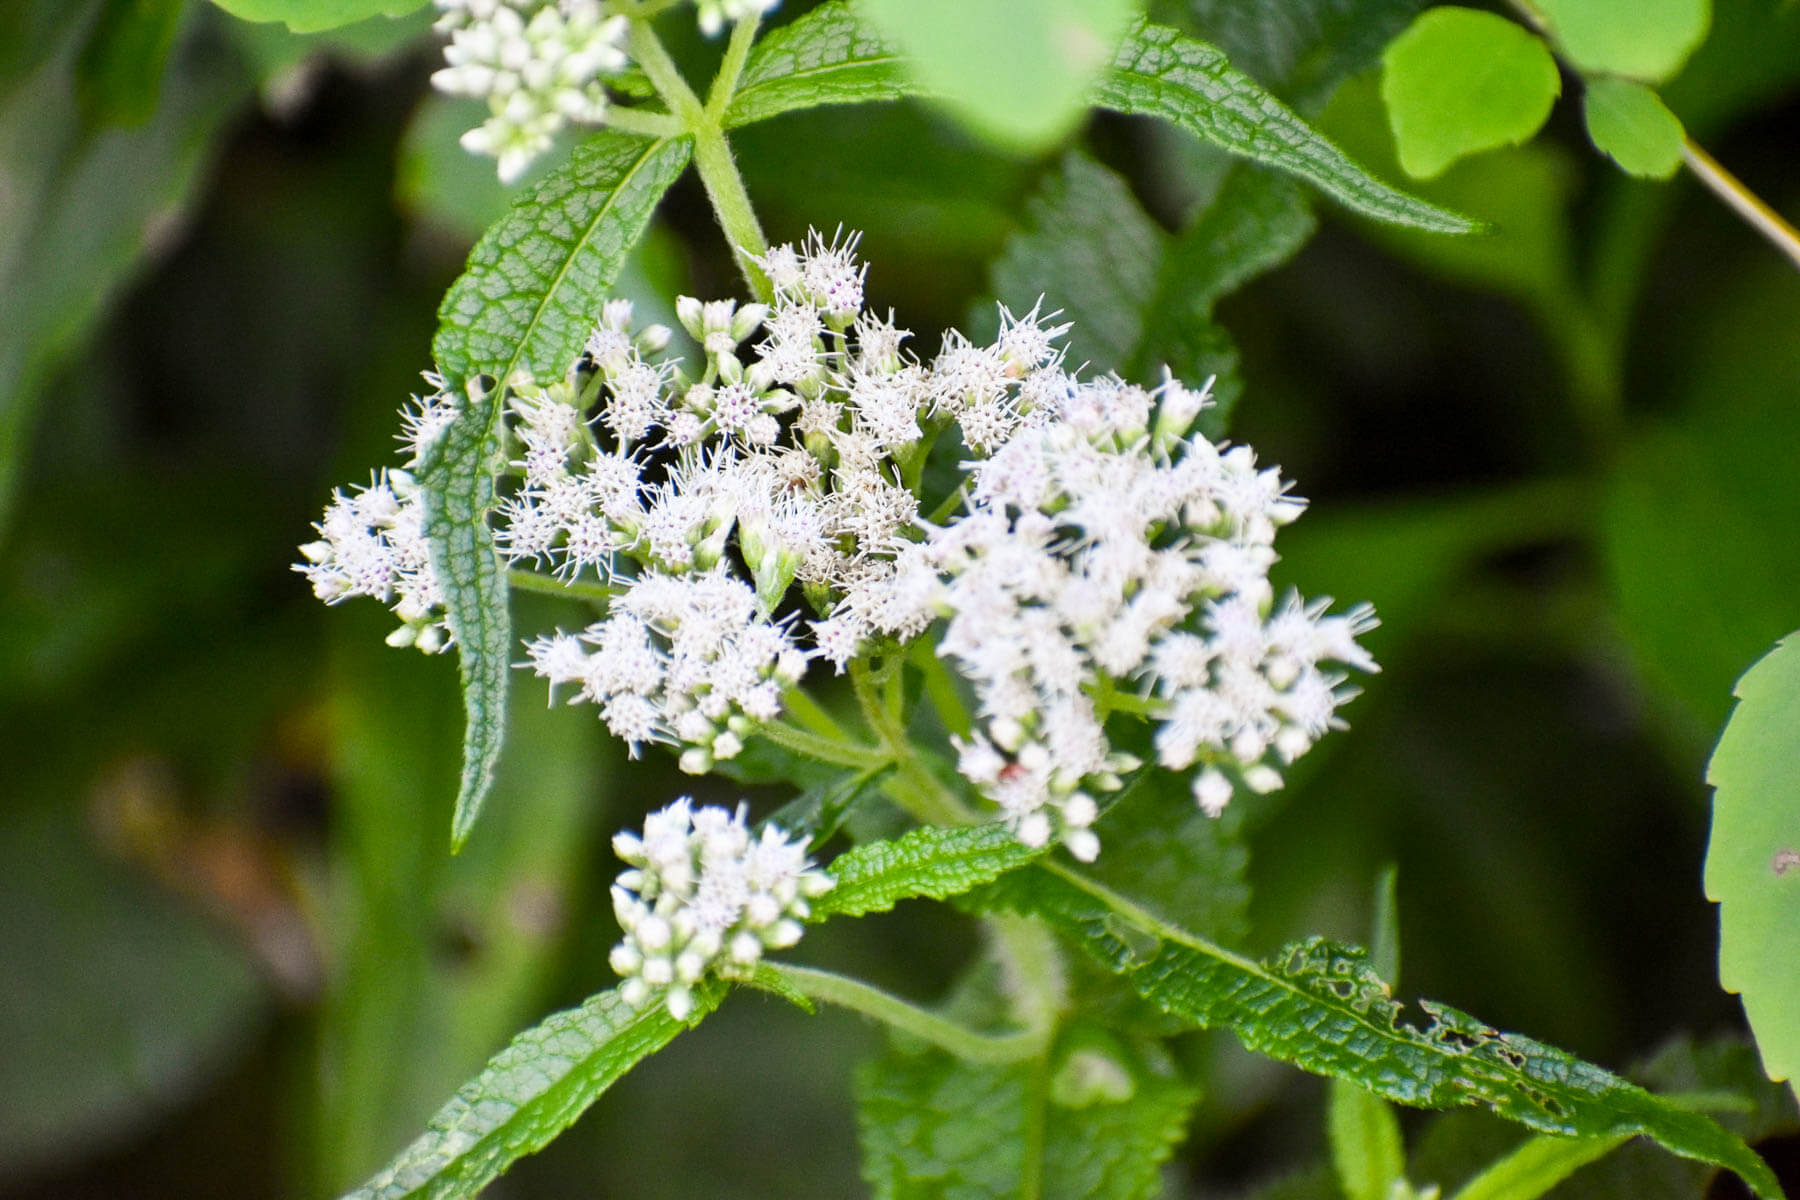 Clusters of small white flowers surrounded by green triangle-shaped leaves